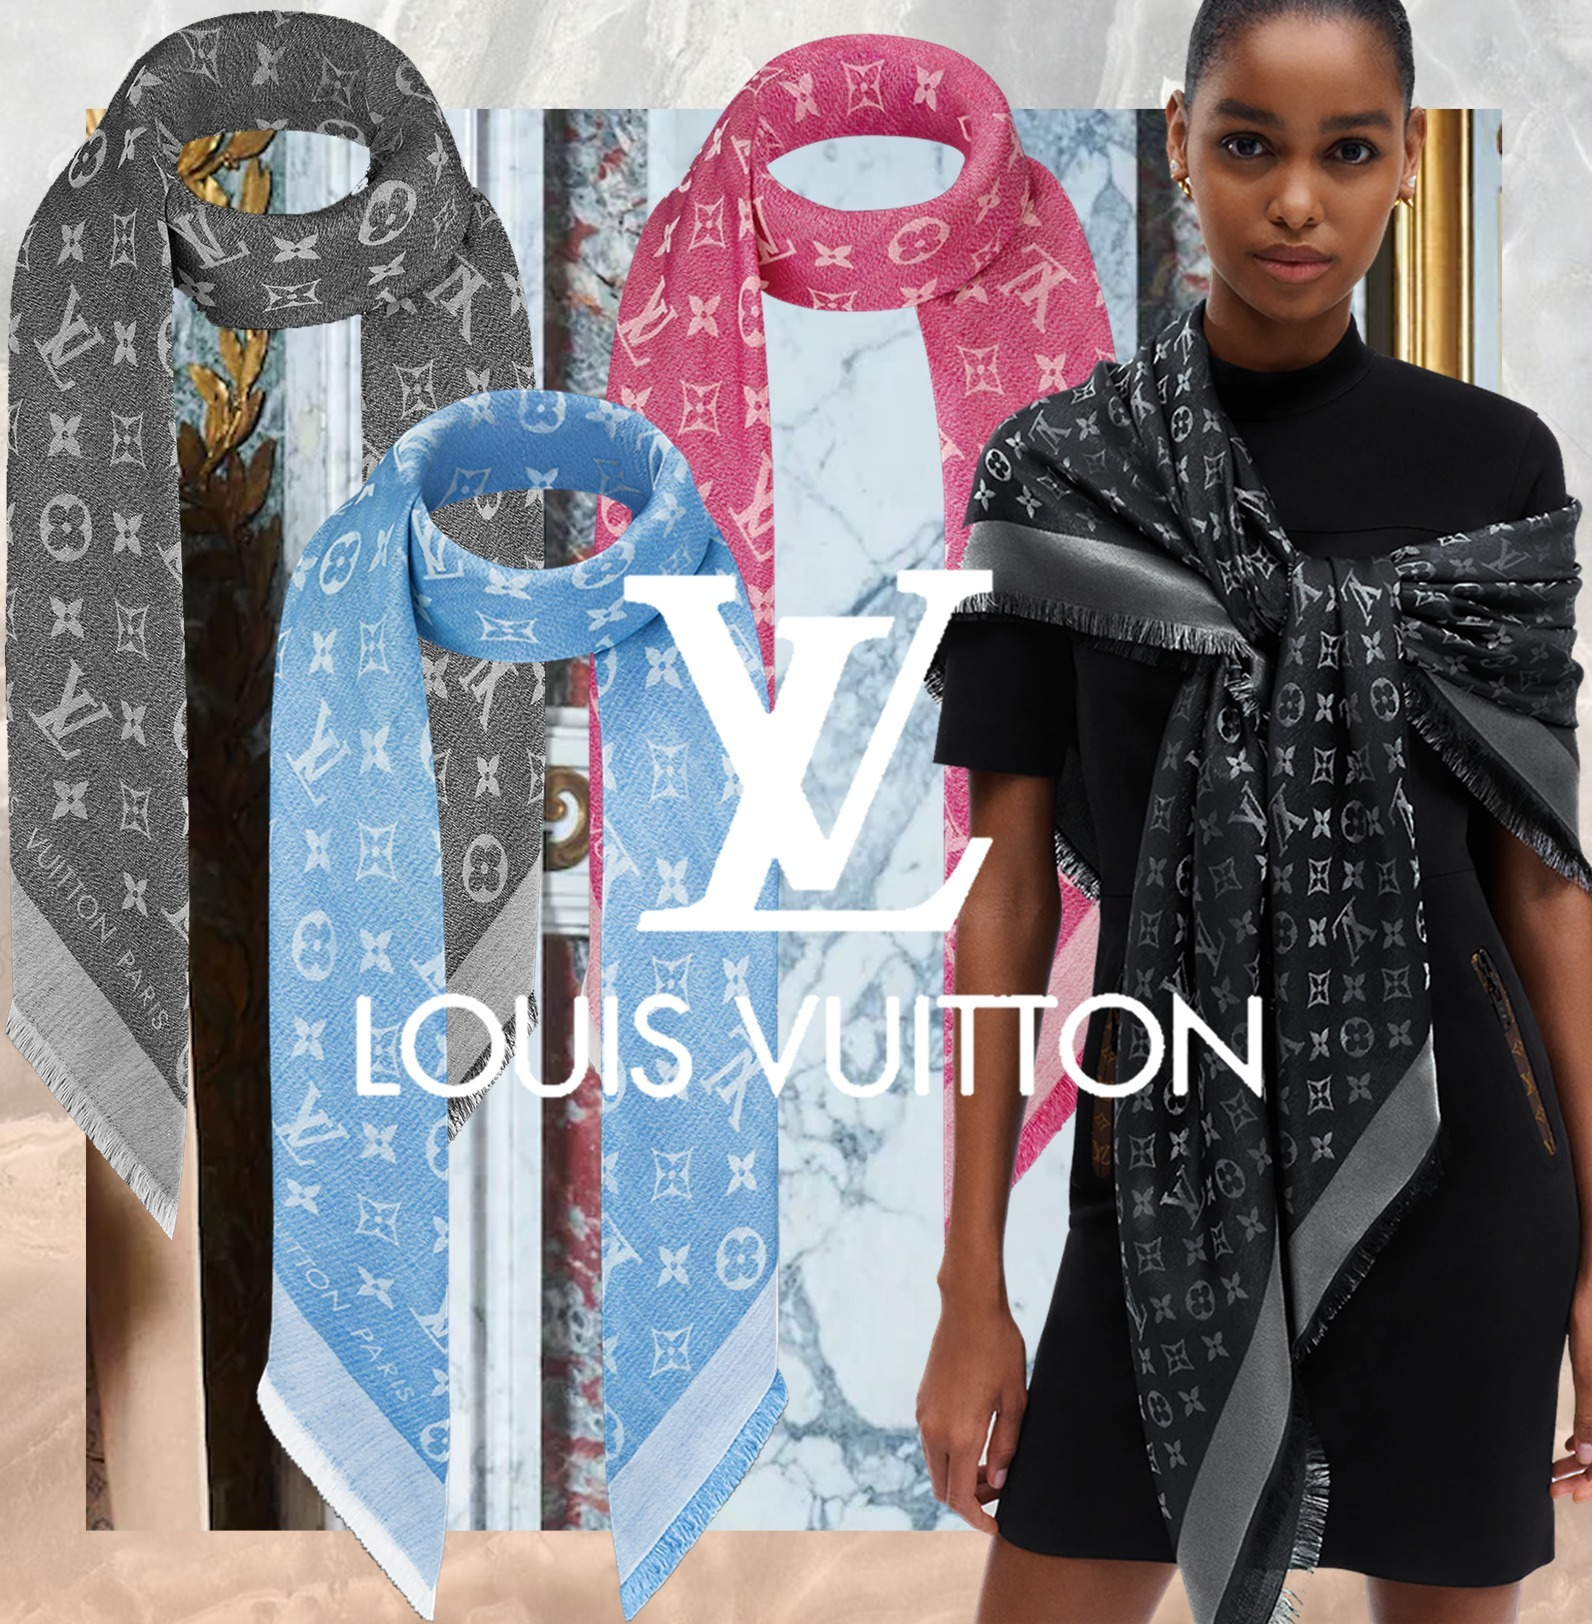 21-22AW新作【すぐ届く国内発送】Louis Vuitton ショール・ シン (Louis Vuitton/マフラー・ストール) M77004